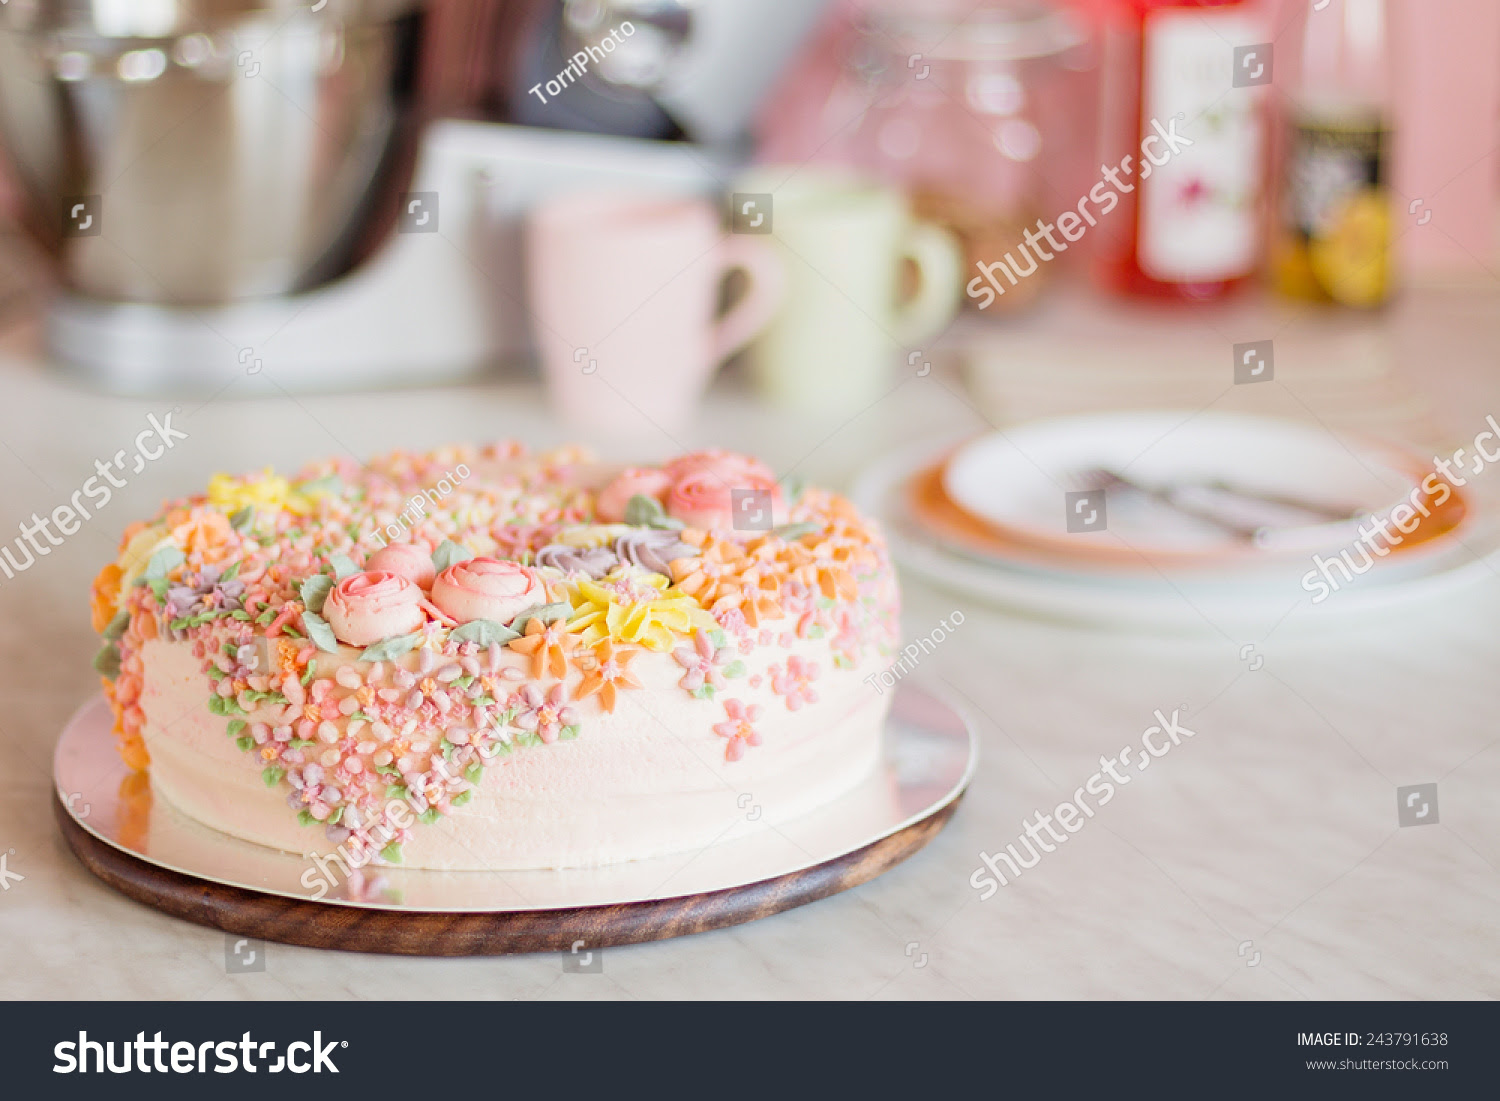 http://www.shutterstock.com/pic-243791638/stock-photo-pastel-pink-cake-decorated-with-cream-flowers-on-kitchen-pastel-colored-shallow-focus.html